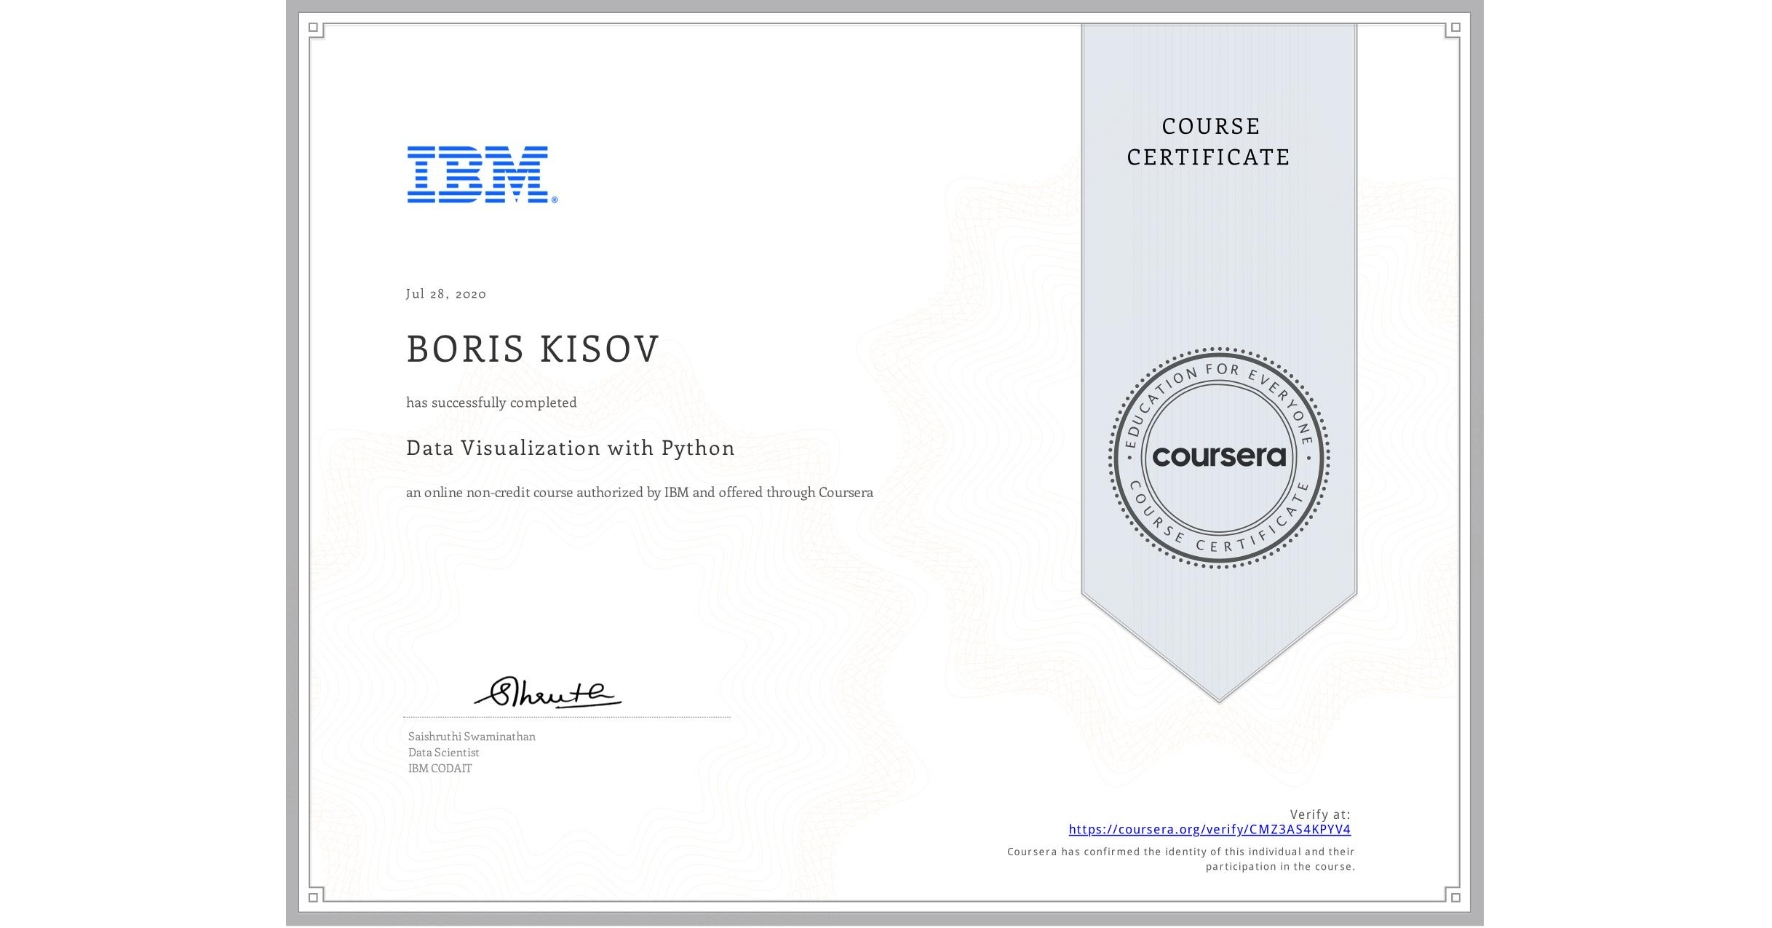 View certificate for BORIS KISOV, Data Visualization with Python, an online non-credit course authorized by IBM and offered through Coursera